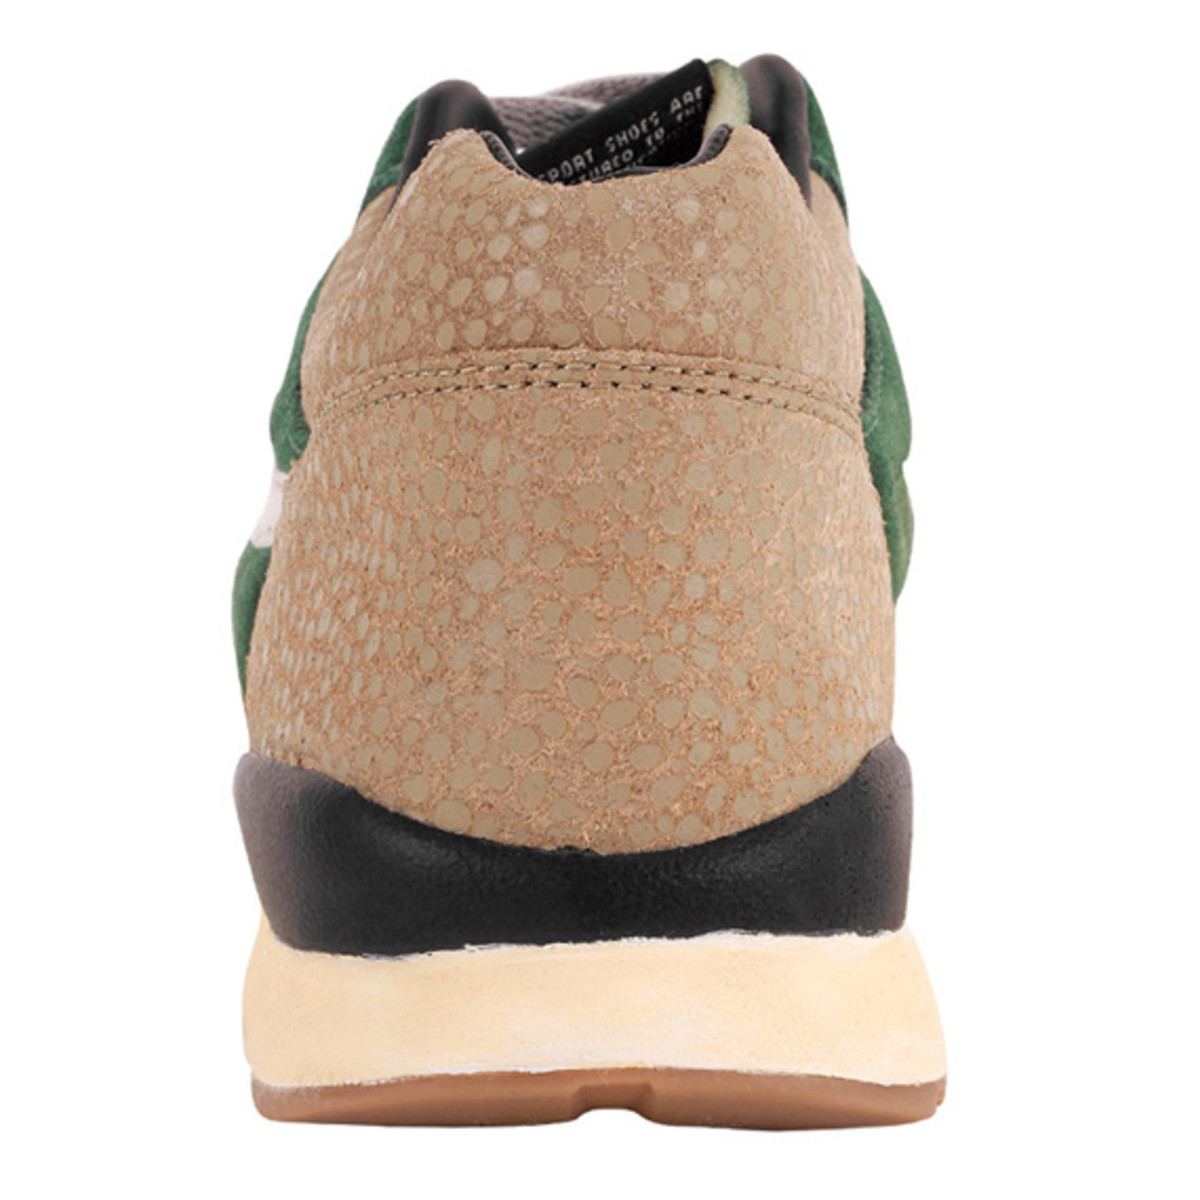 nike-air-safari-gorge-green-04